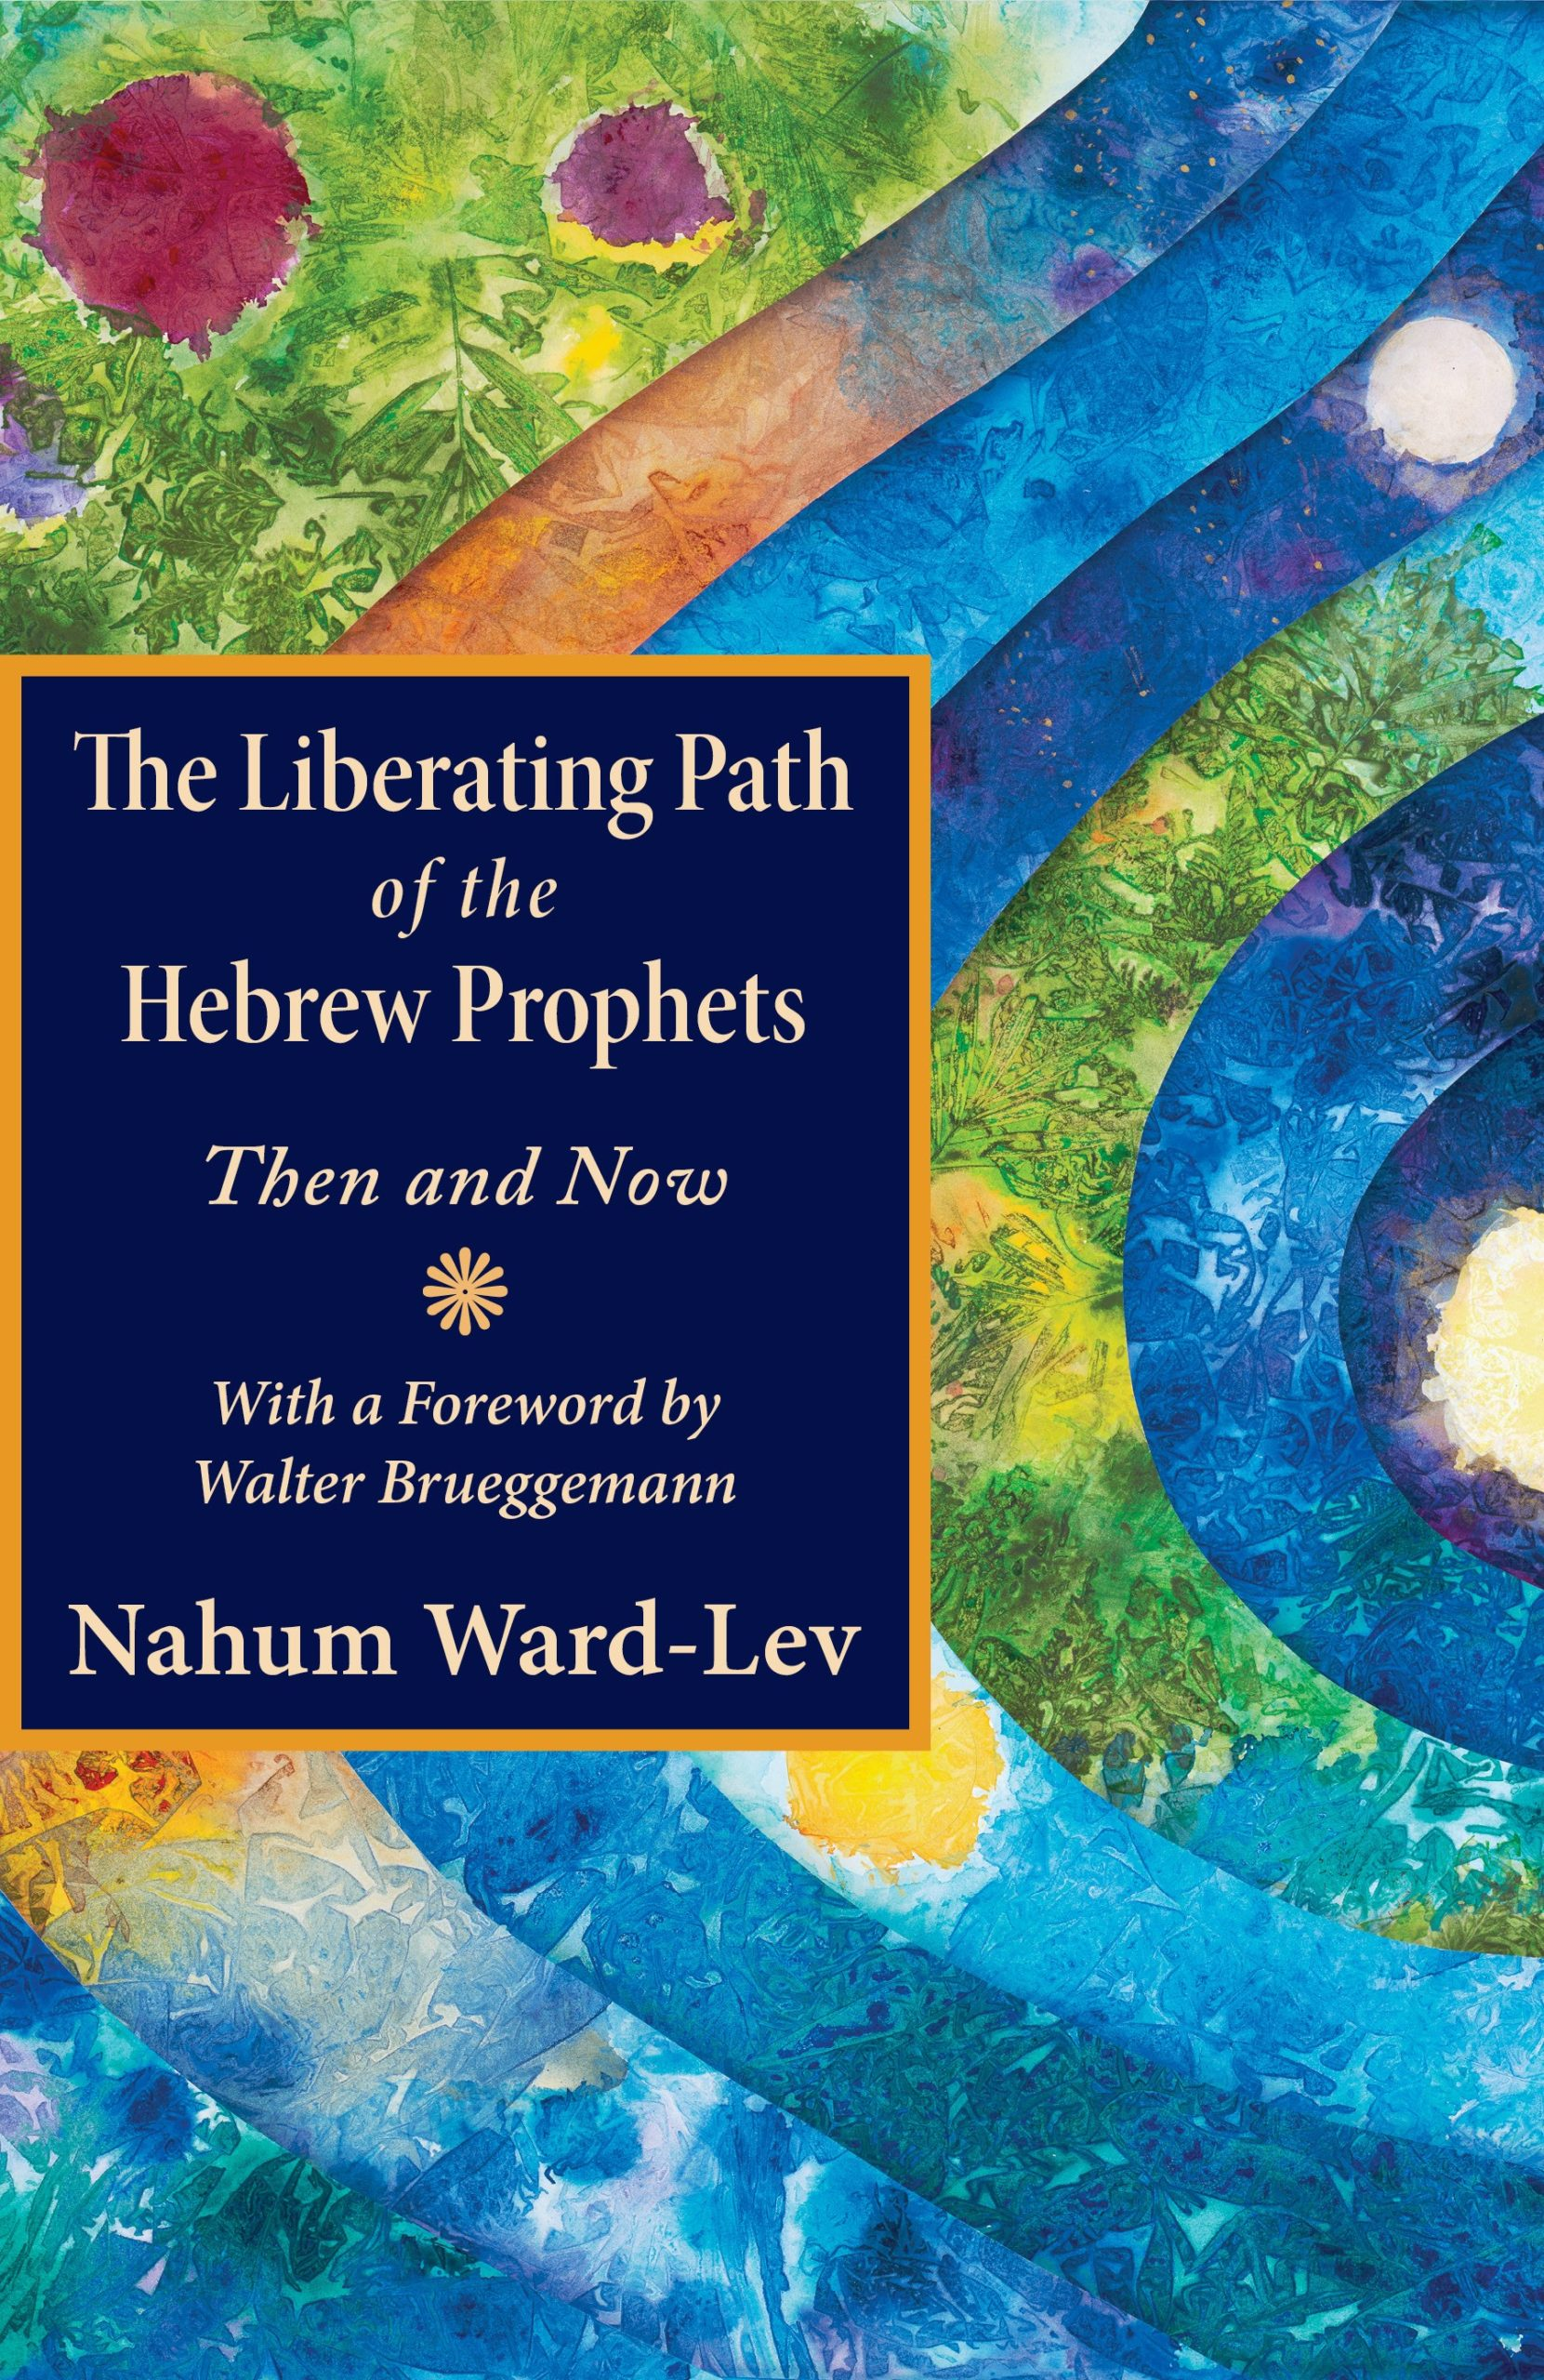 Nahum Ward-Lev: The Liberating Path of the Hebrew Prophets: Then and Now